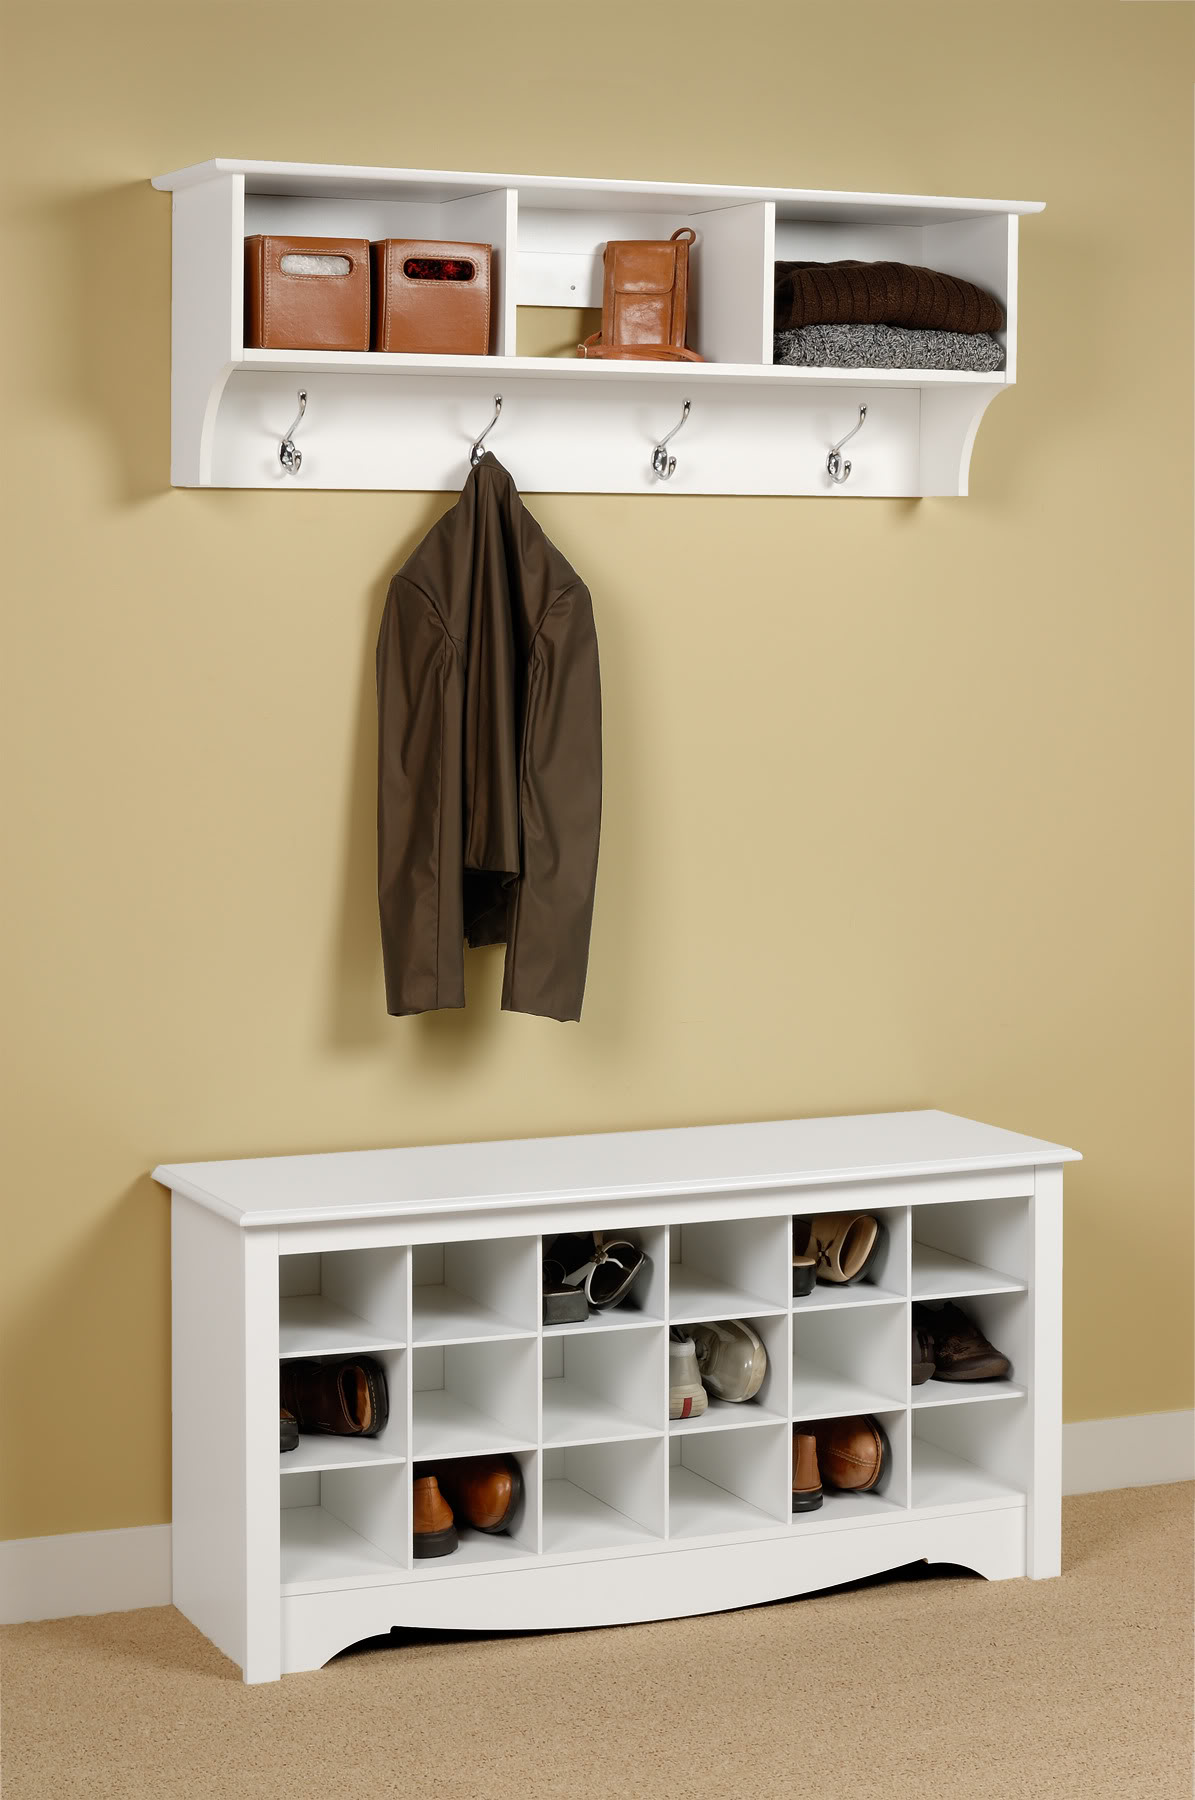 Amazing Wall Storage Units and Shelves 7 wall storage shelves